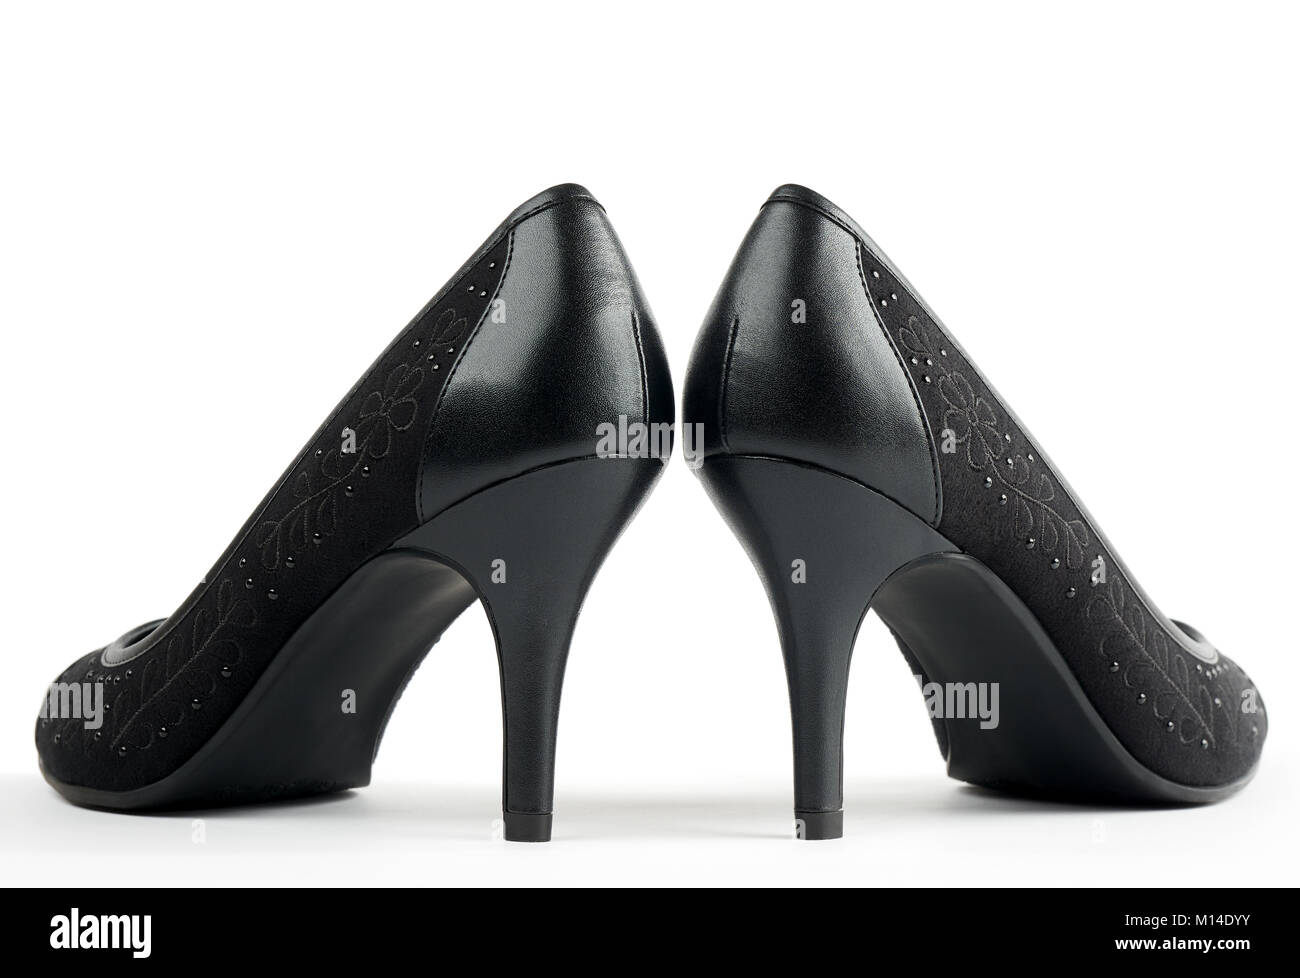 8e31b07d3e Pair of black new women's high-heeled shoes isolated on white - Stock Image